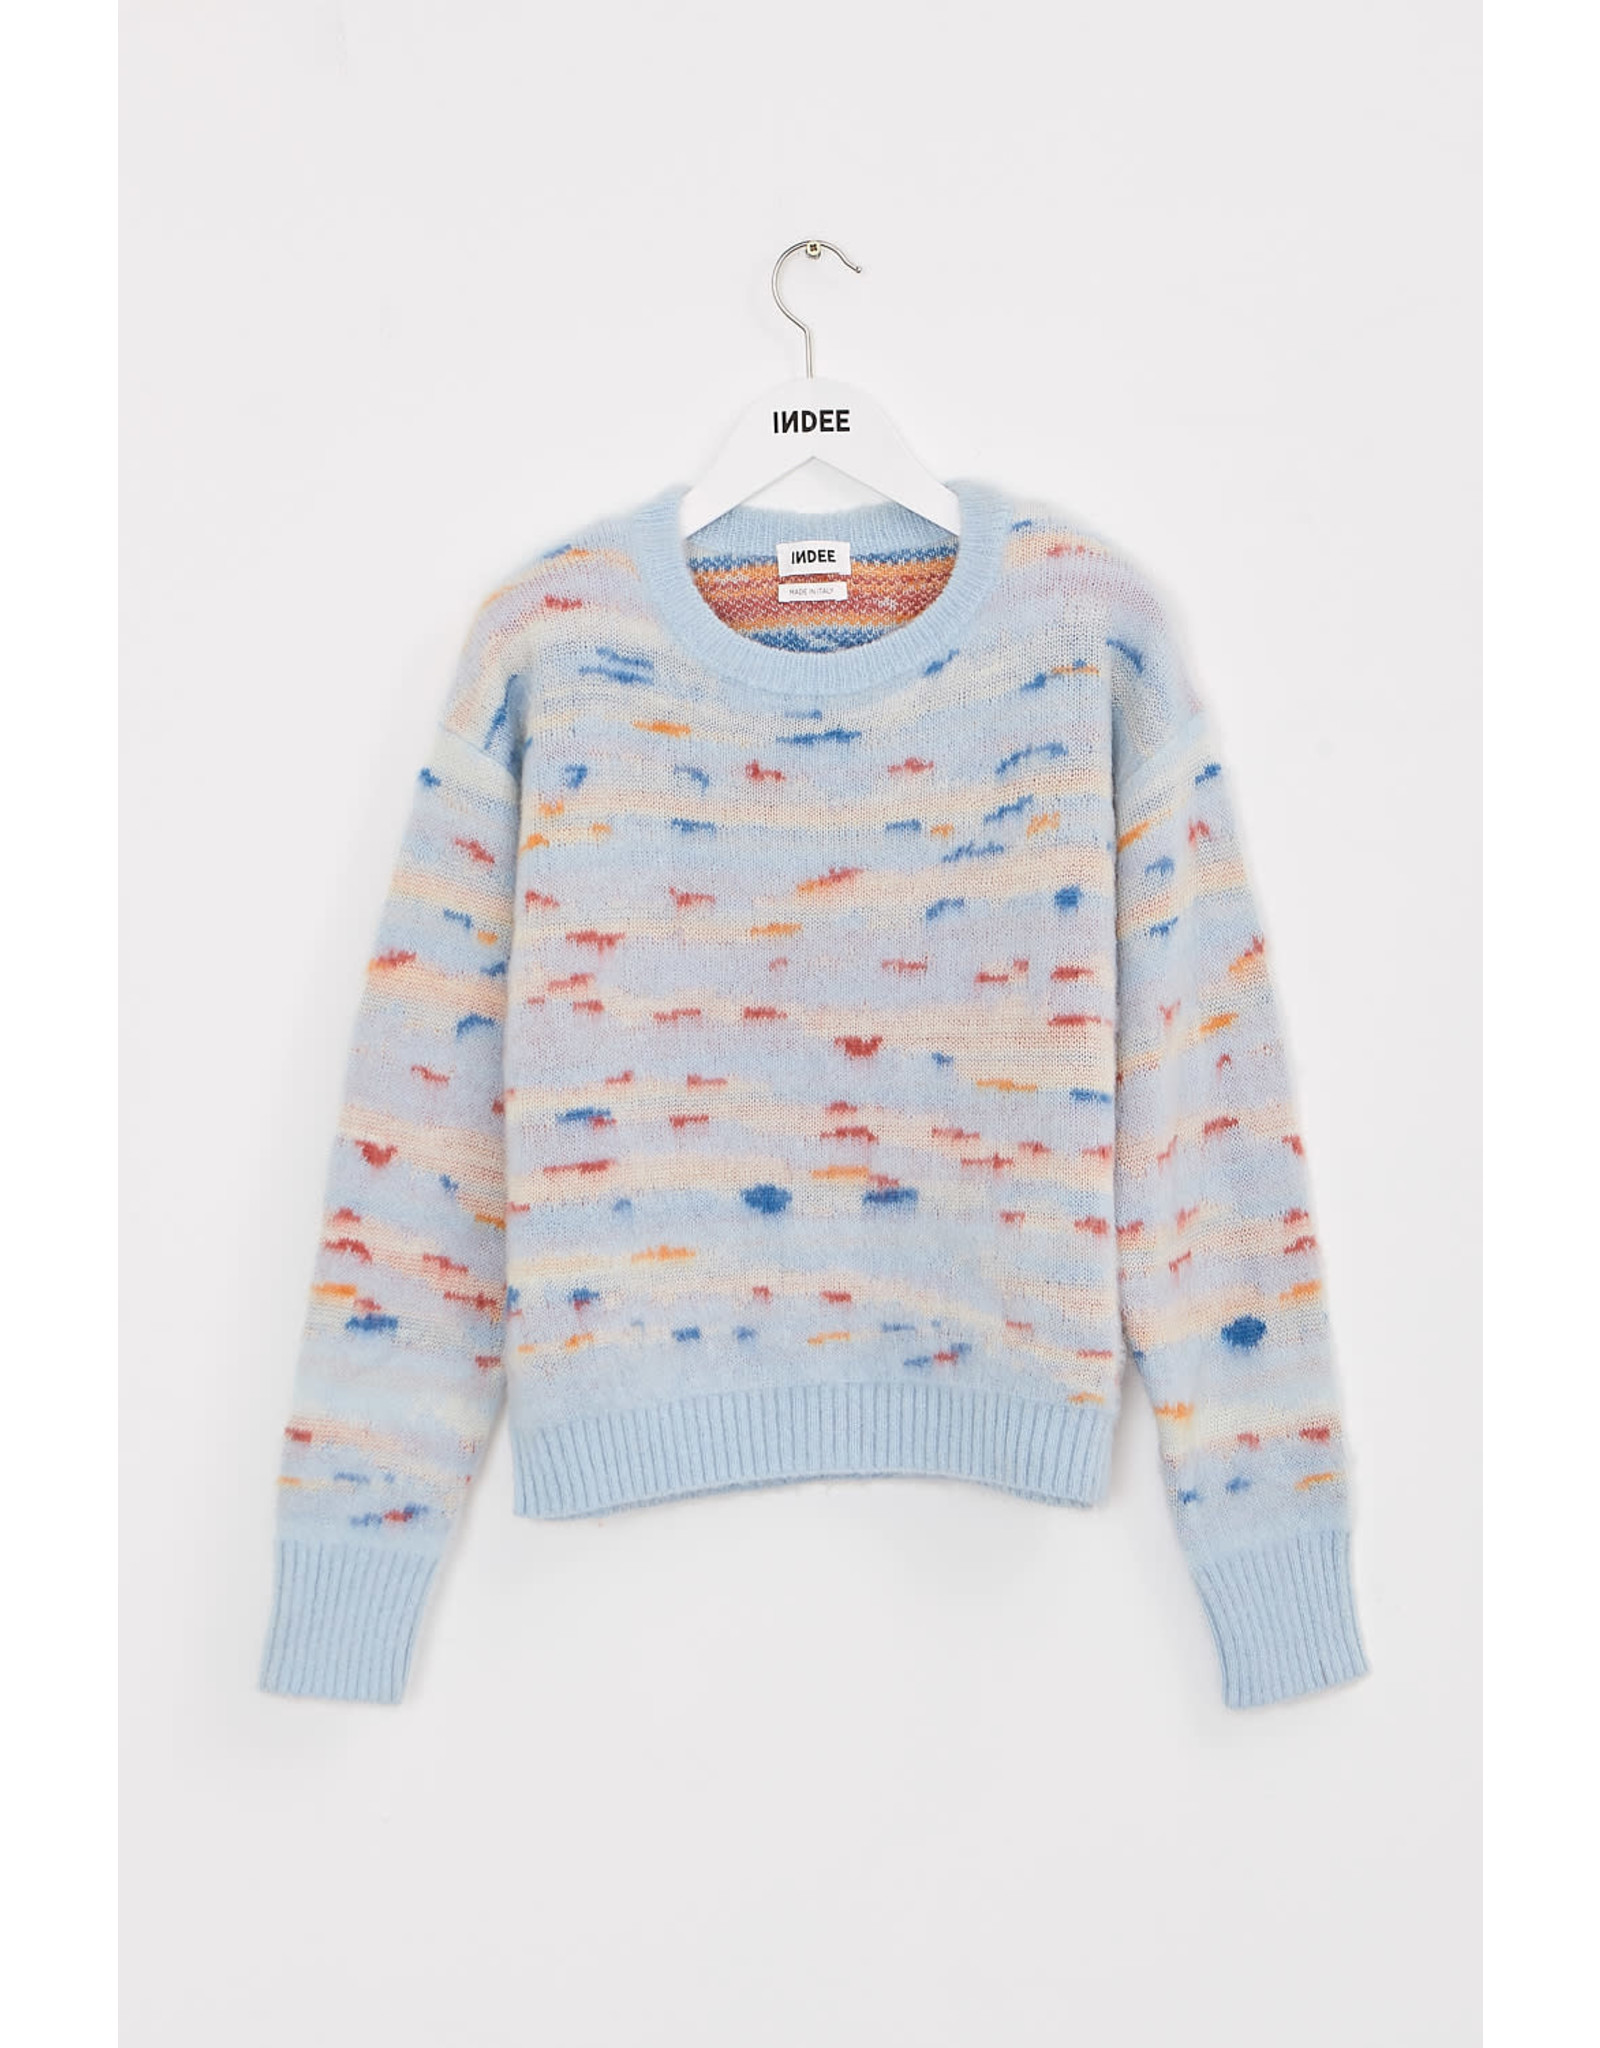 INDEE FW21 Kylie knit sweater